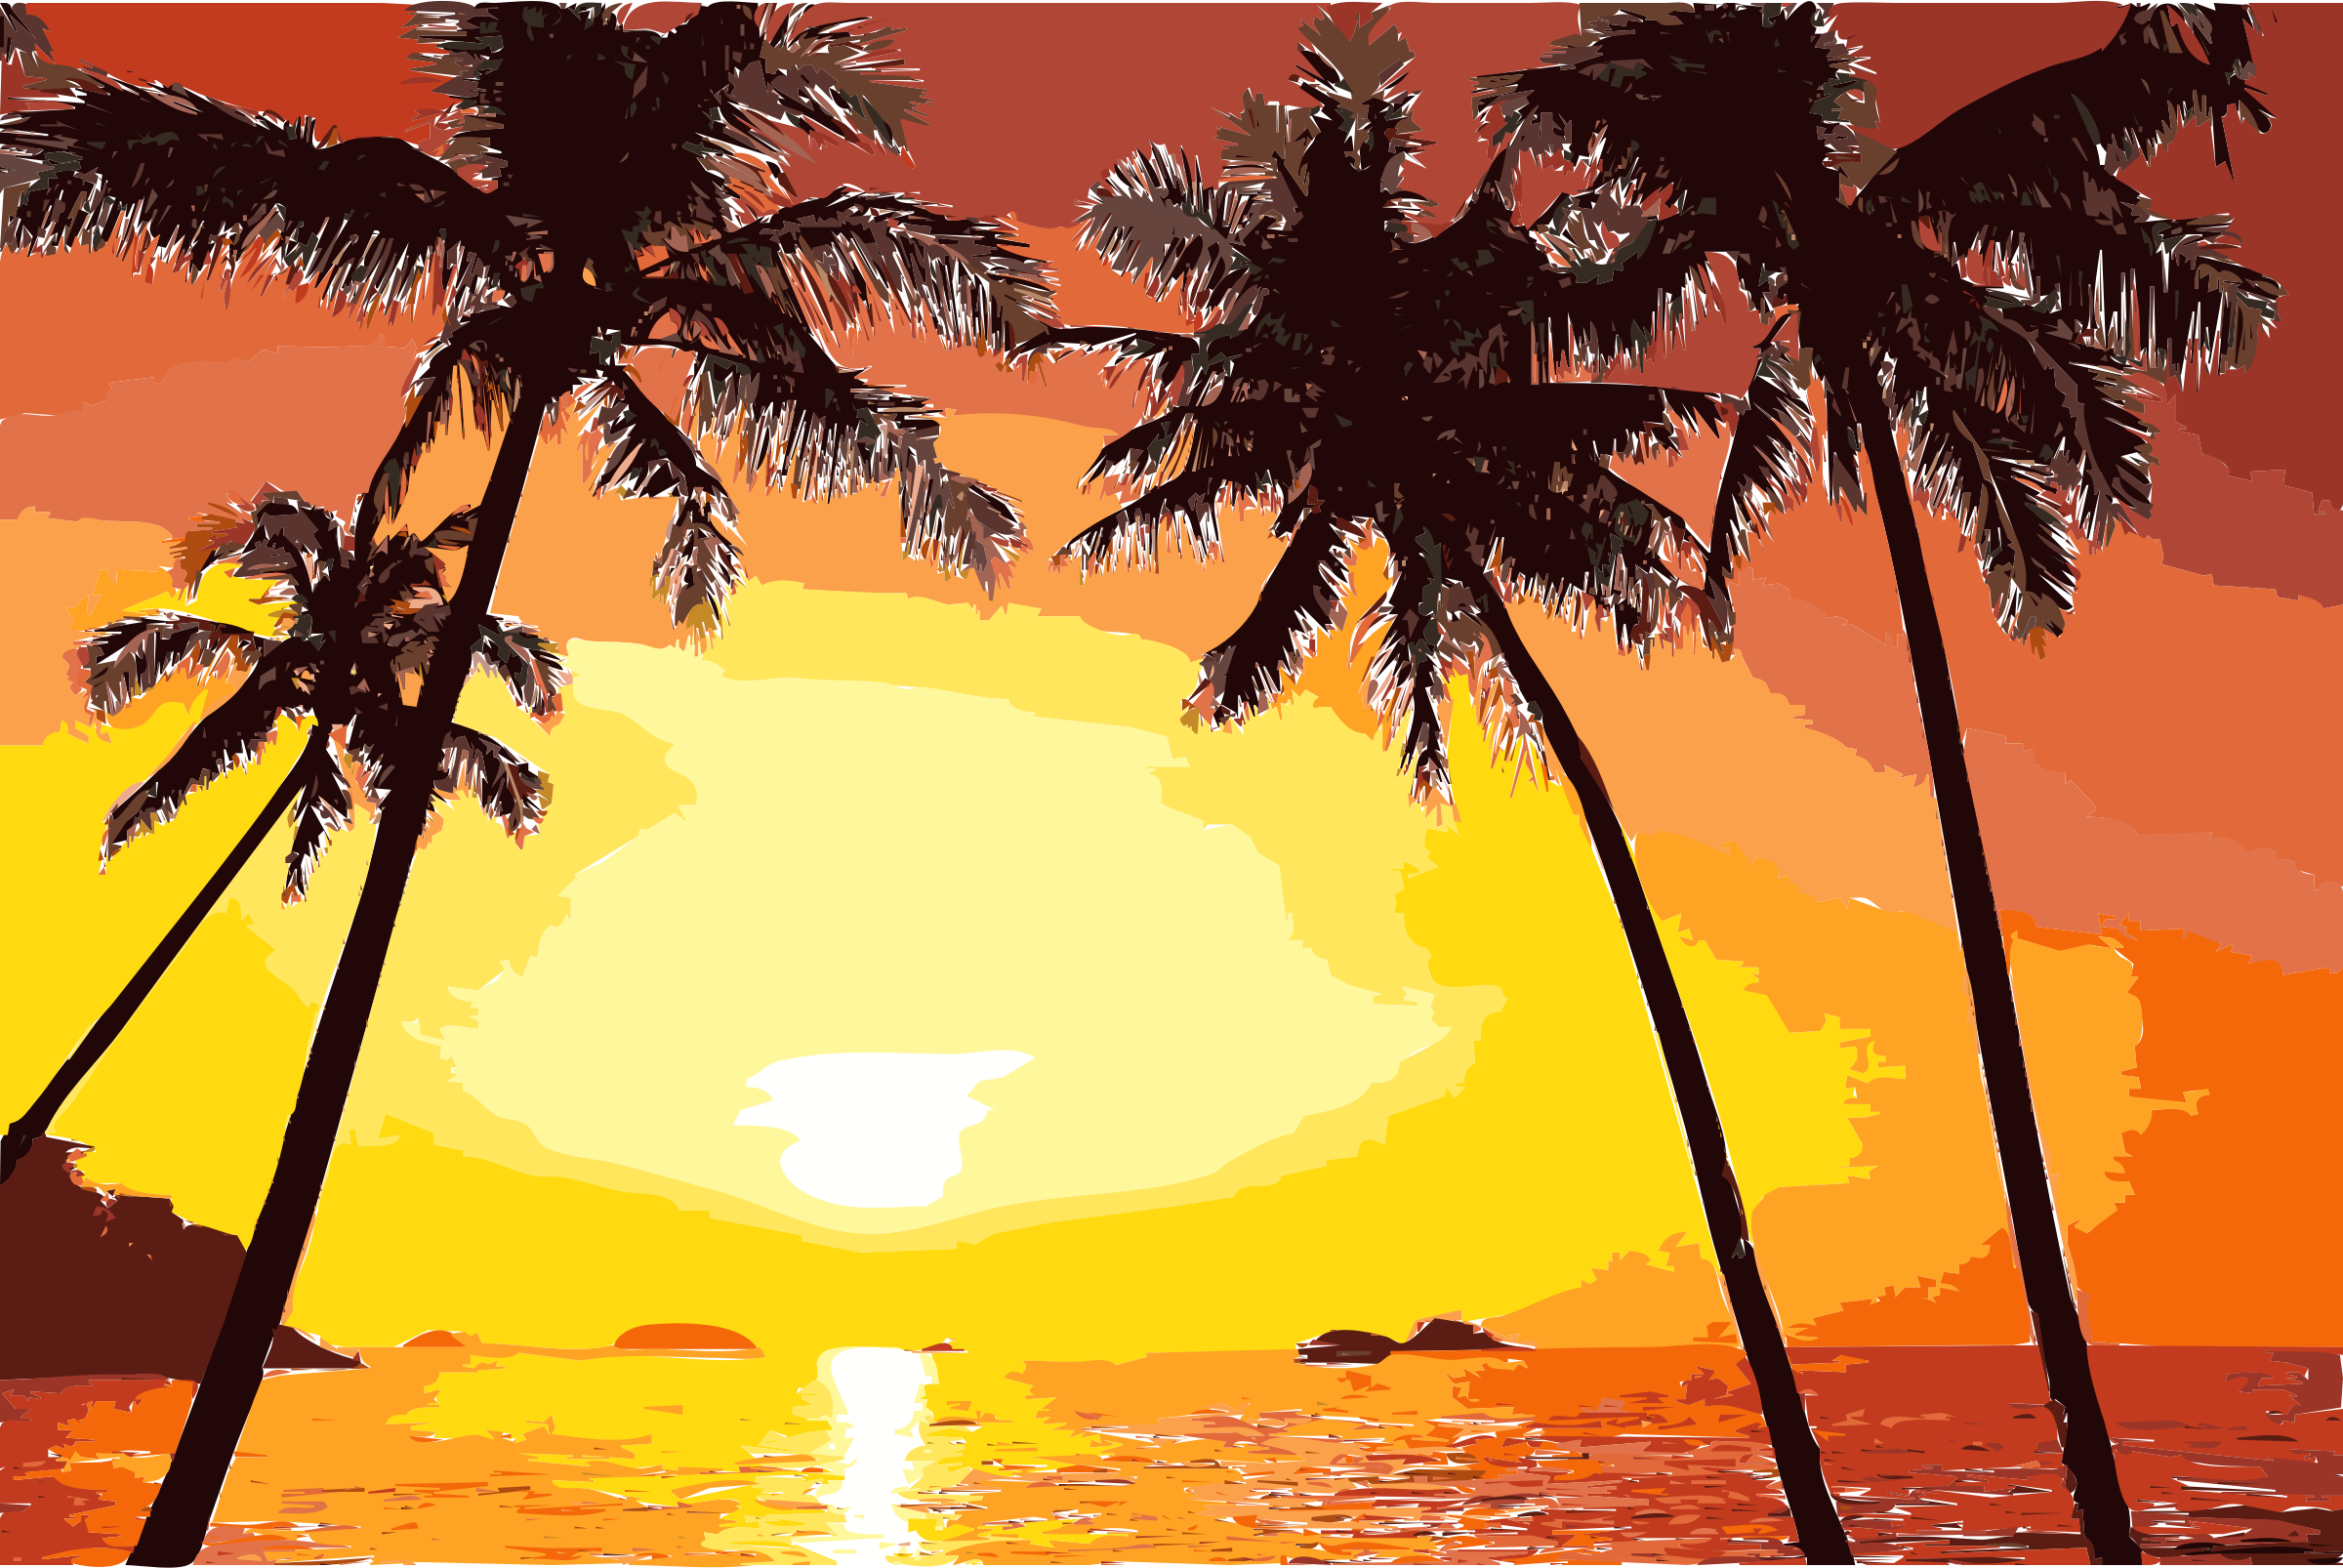 Sunset clipart evening sunset. Tropical icons png free